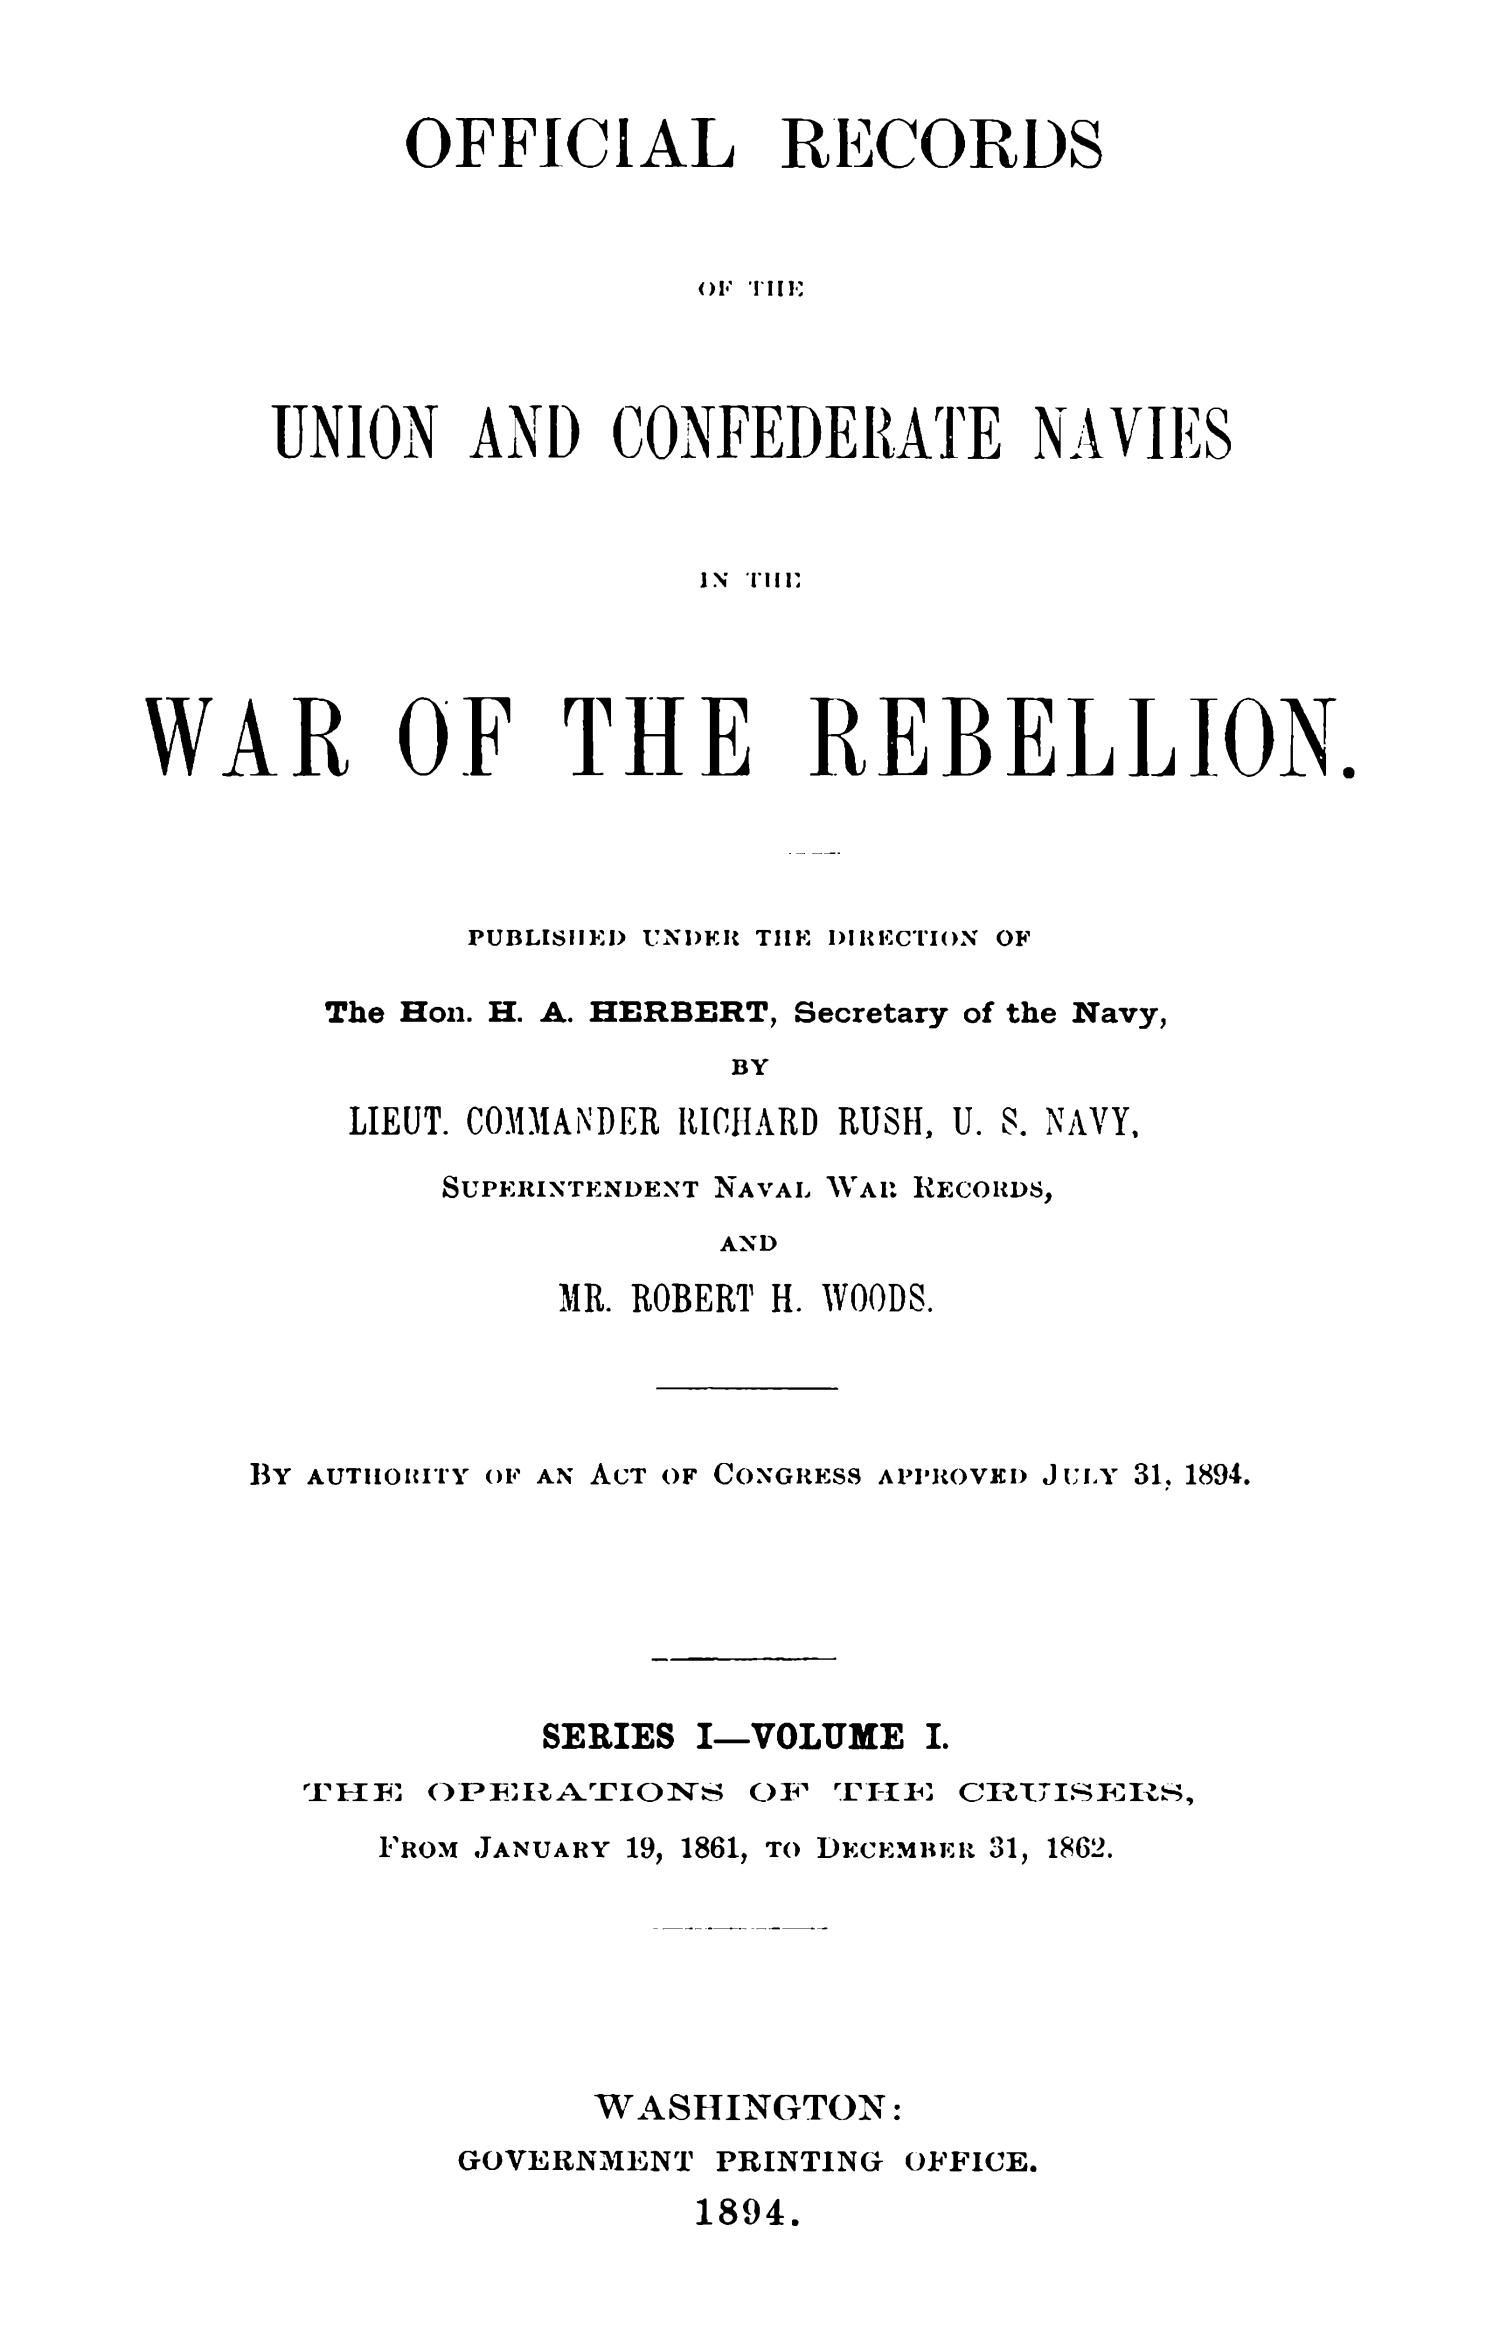 Official Records of the Union and Confederate Navies in the War of the Rebellion. Series 1, Volume 1.                                                                                                      Title Page